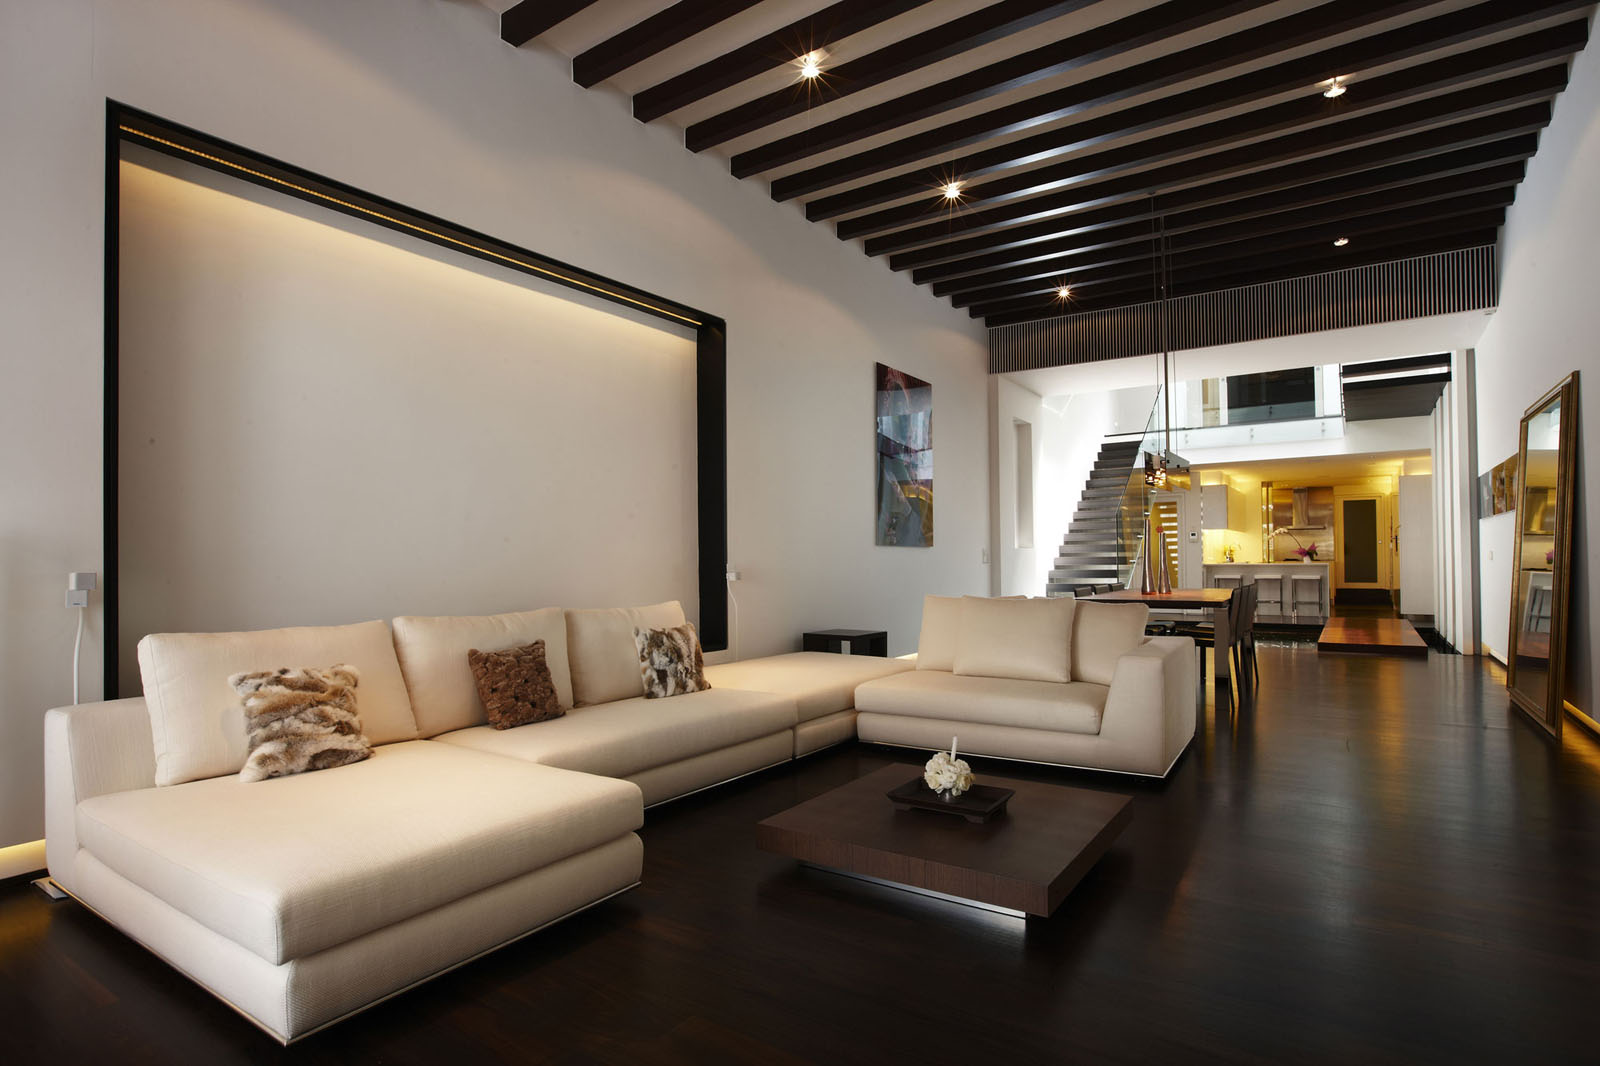 singapore contemporary home interiors - Inside Modern Luxury Homes